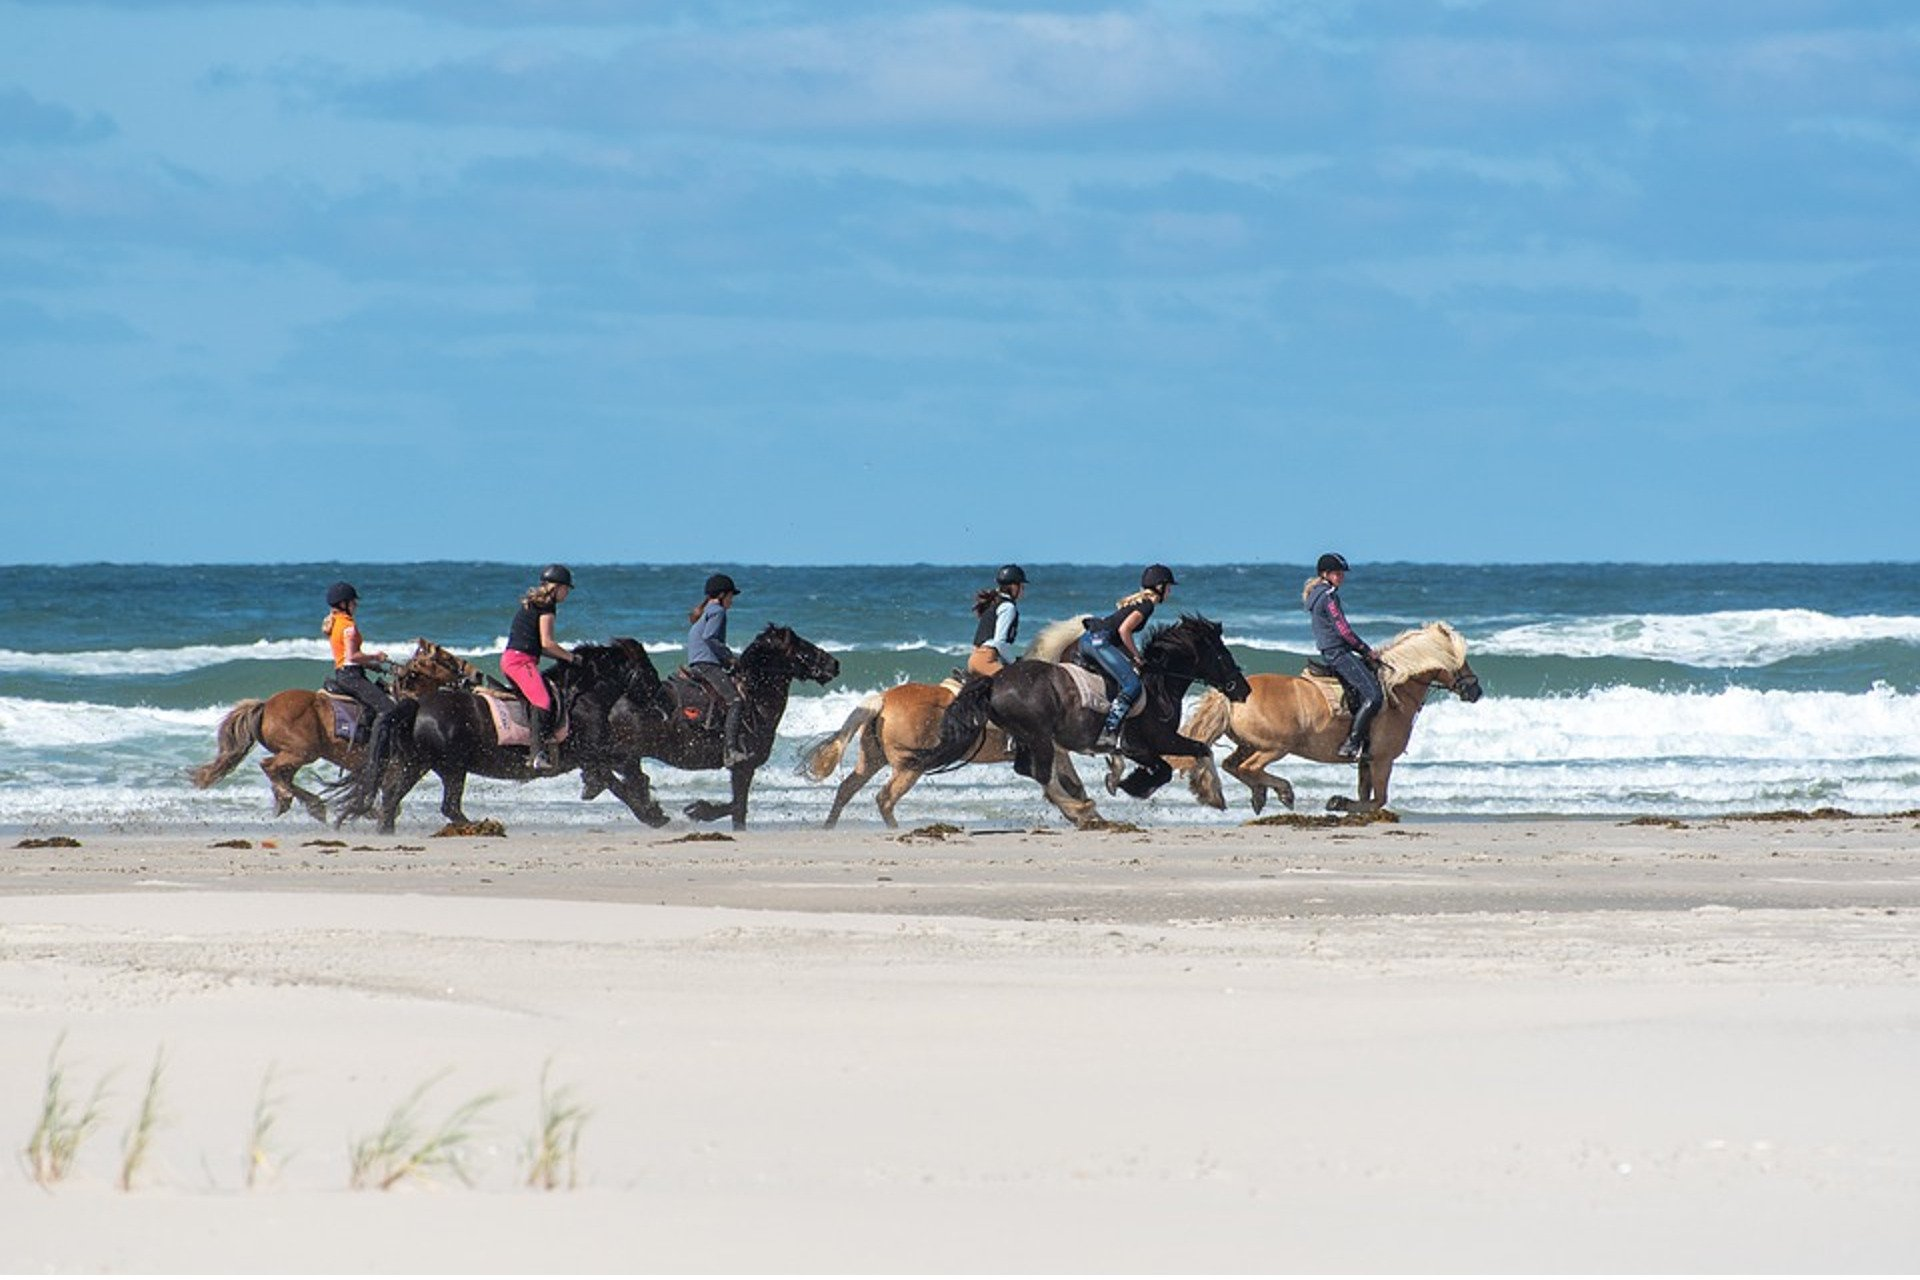 six horses and their rider galloping along the beach